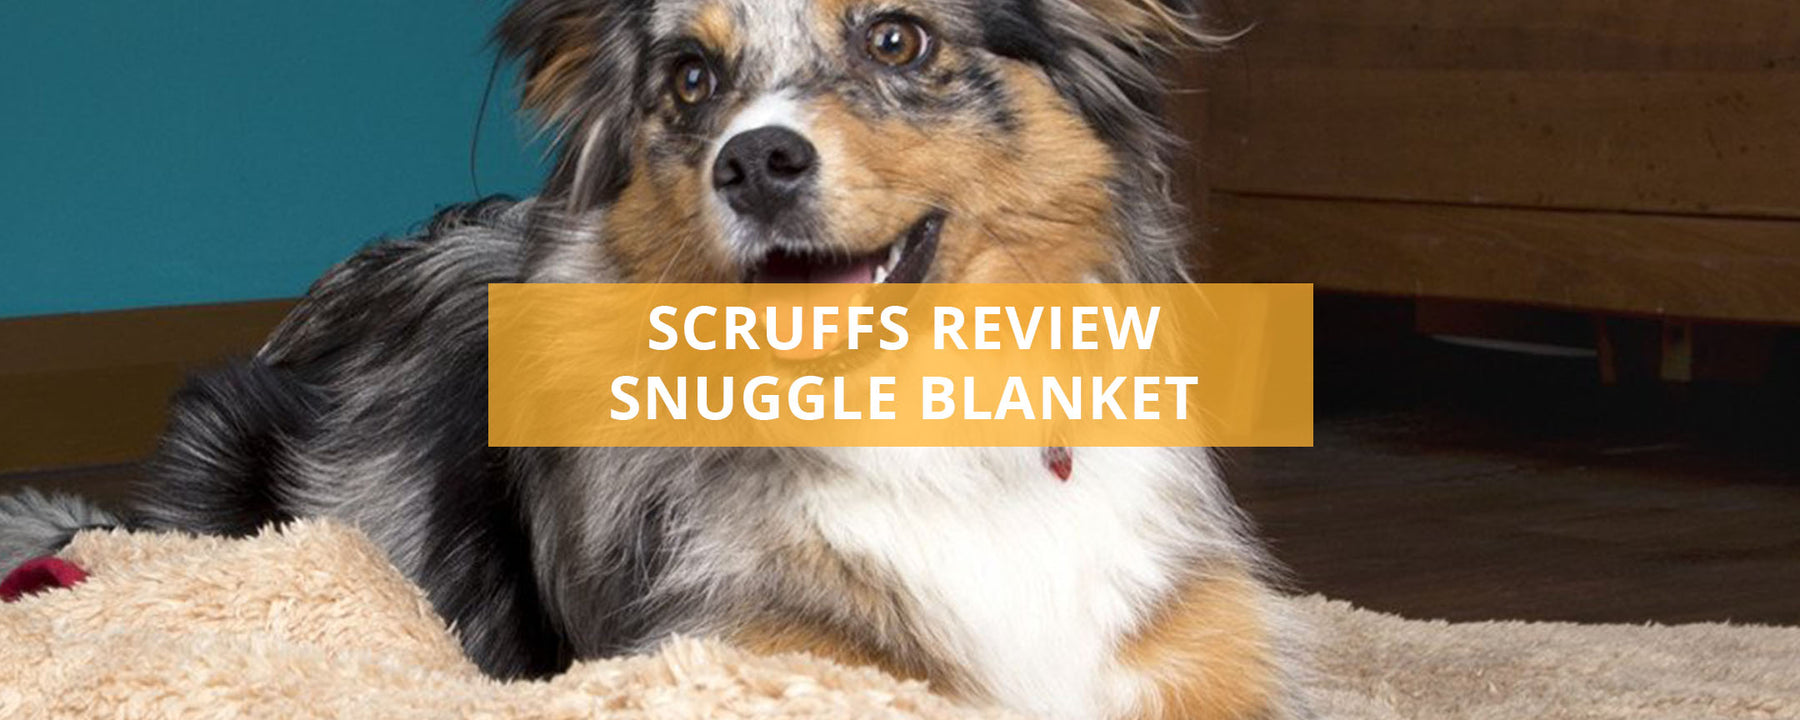 Scruffs Reversible Snuggle Blanket Review